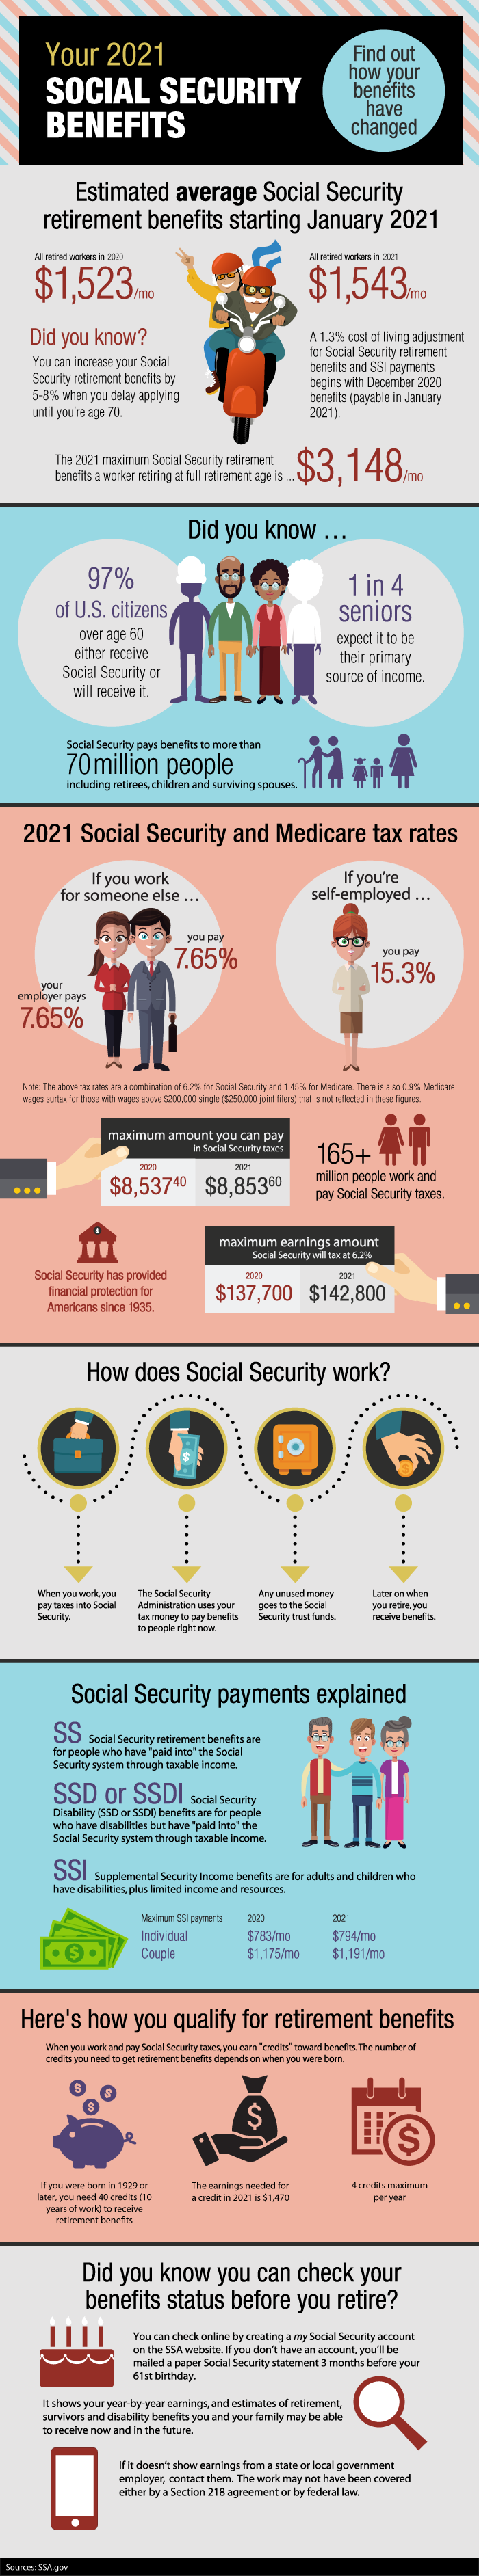 2021 Social Security Benefits image